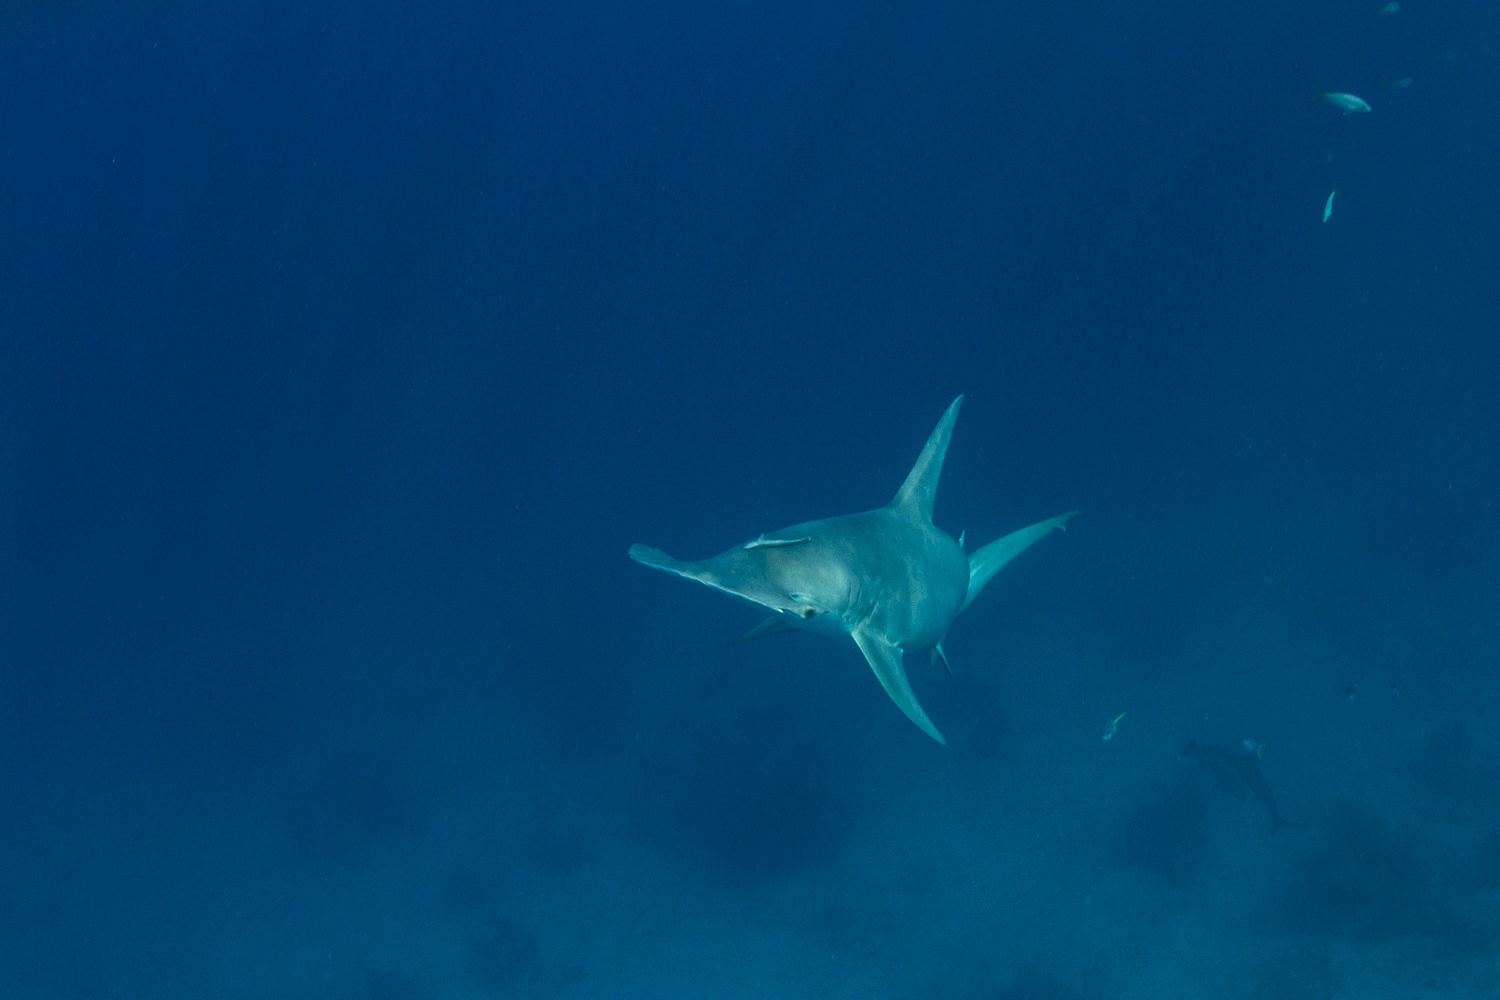 Another great hammerhead joins the team!